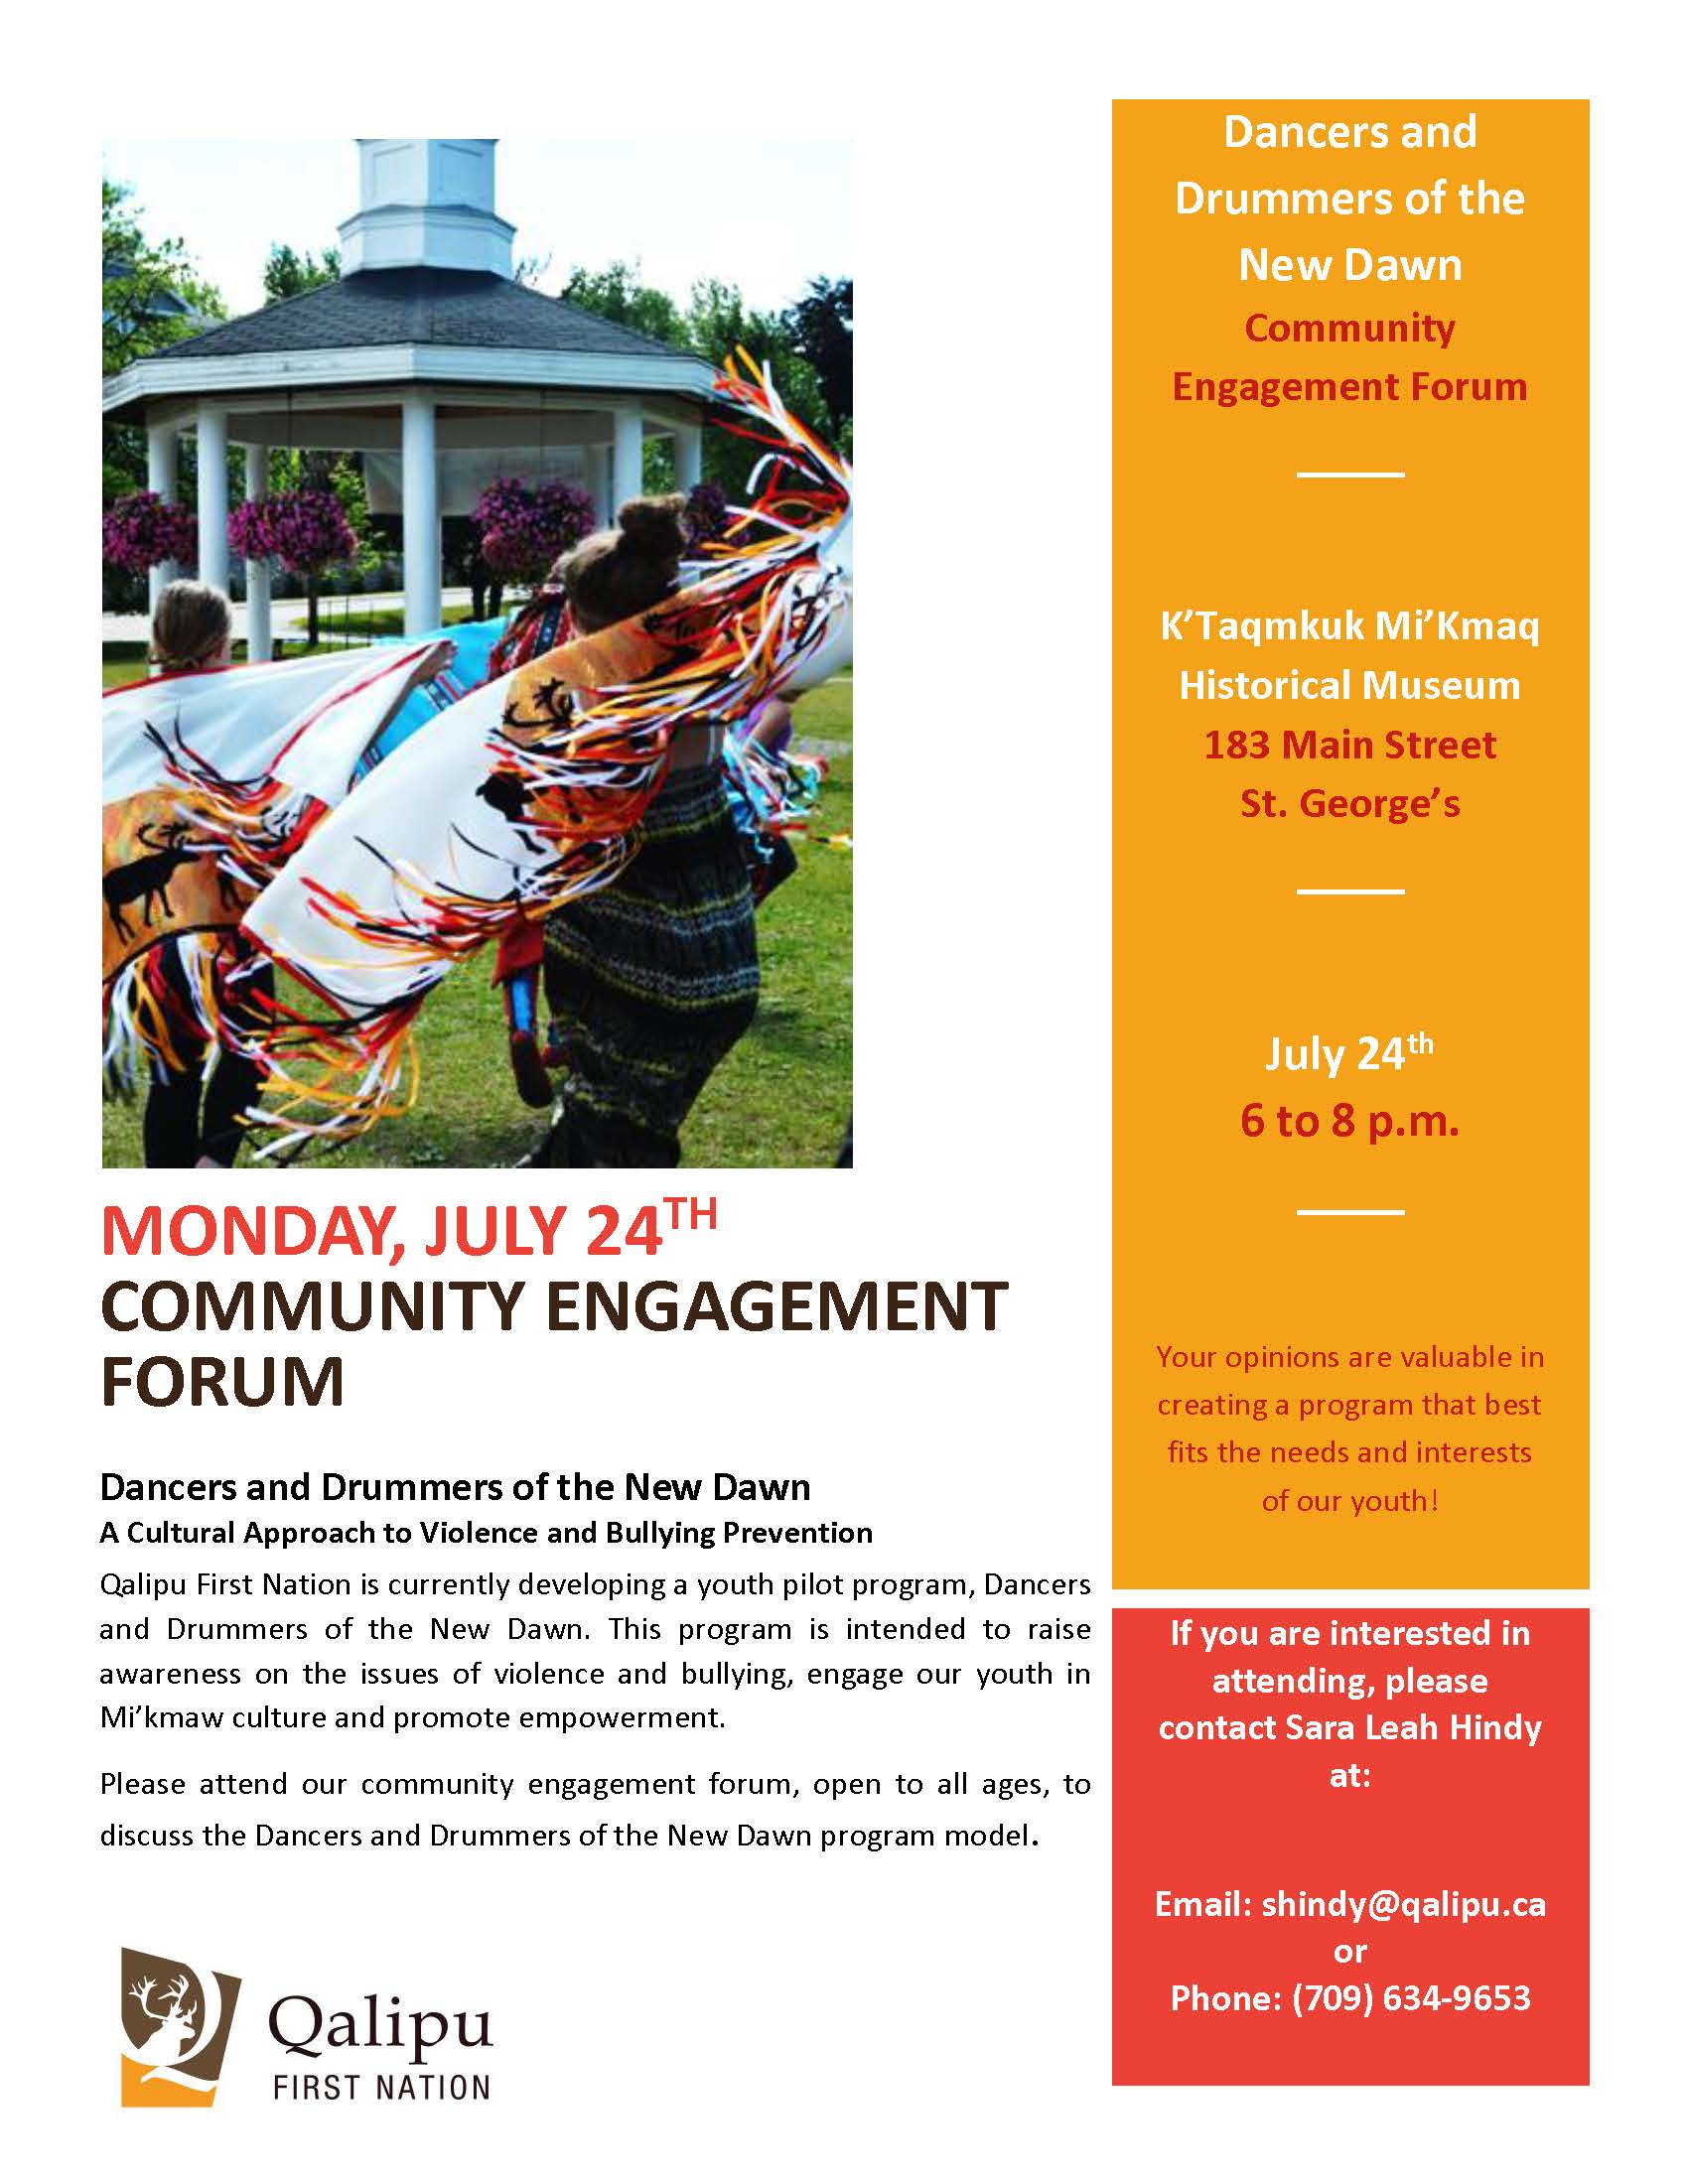 DDOND Community Engagement Poster